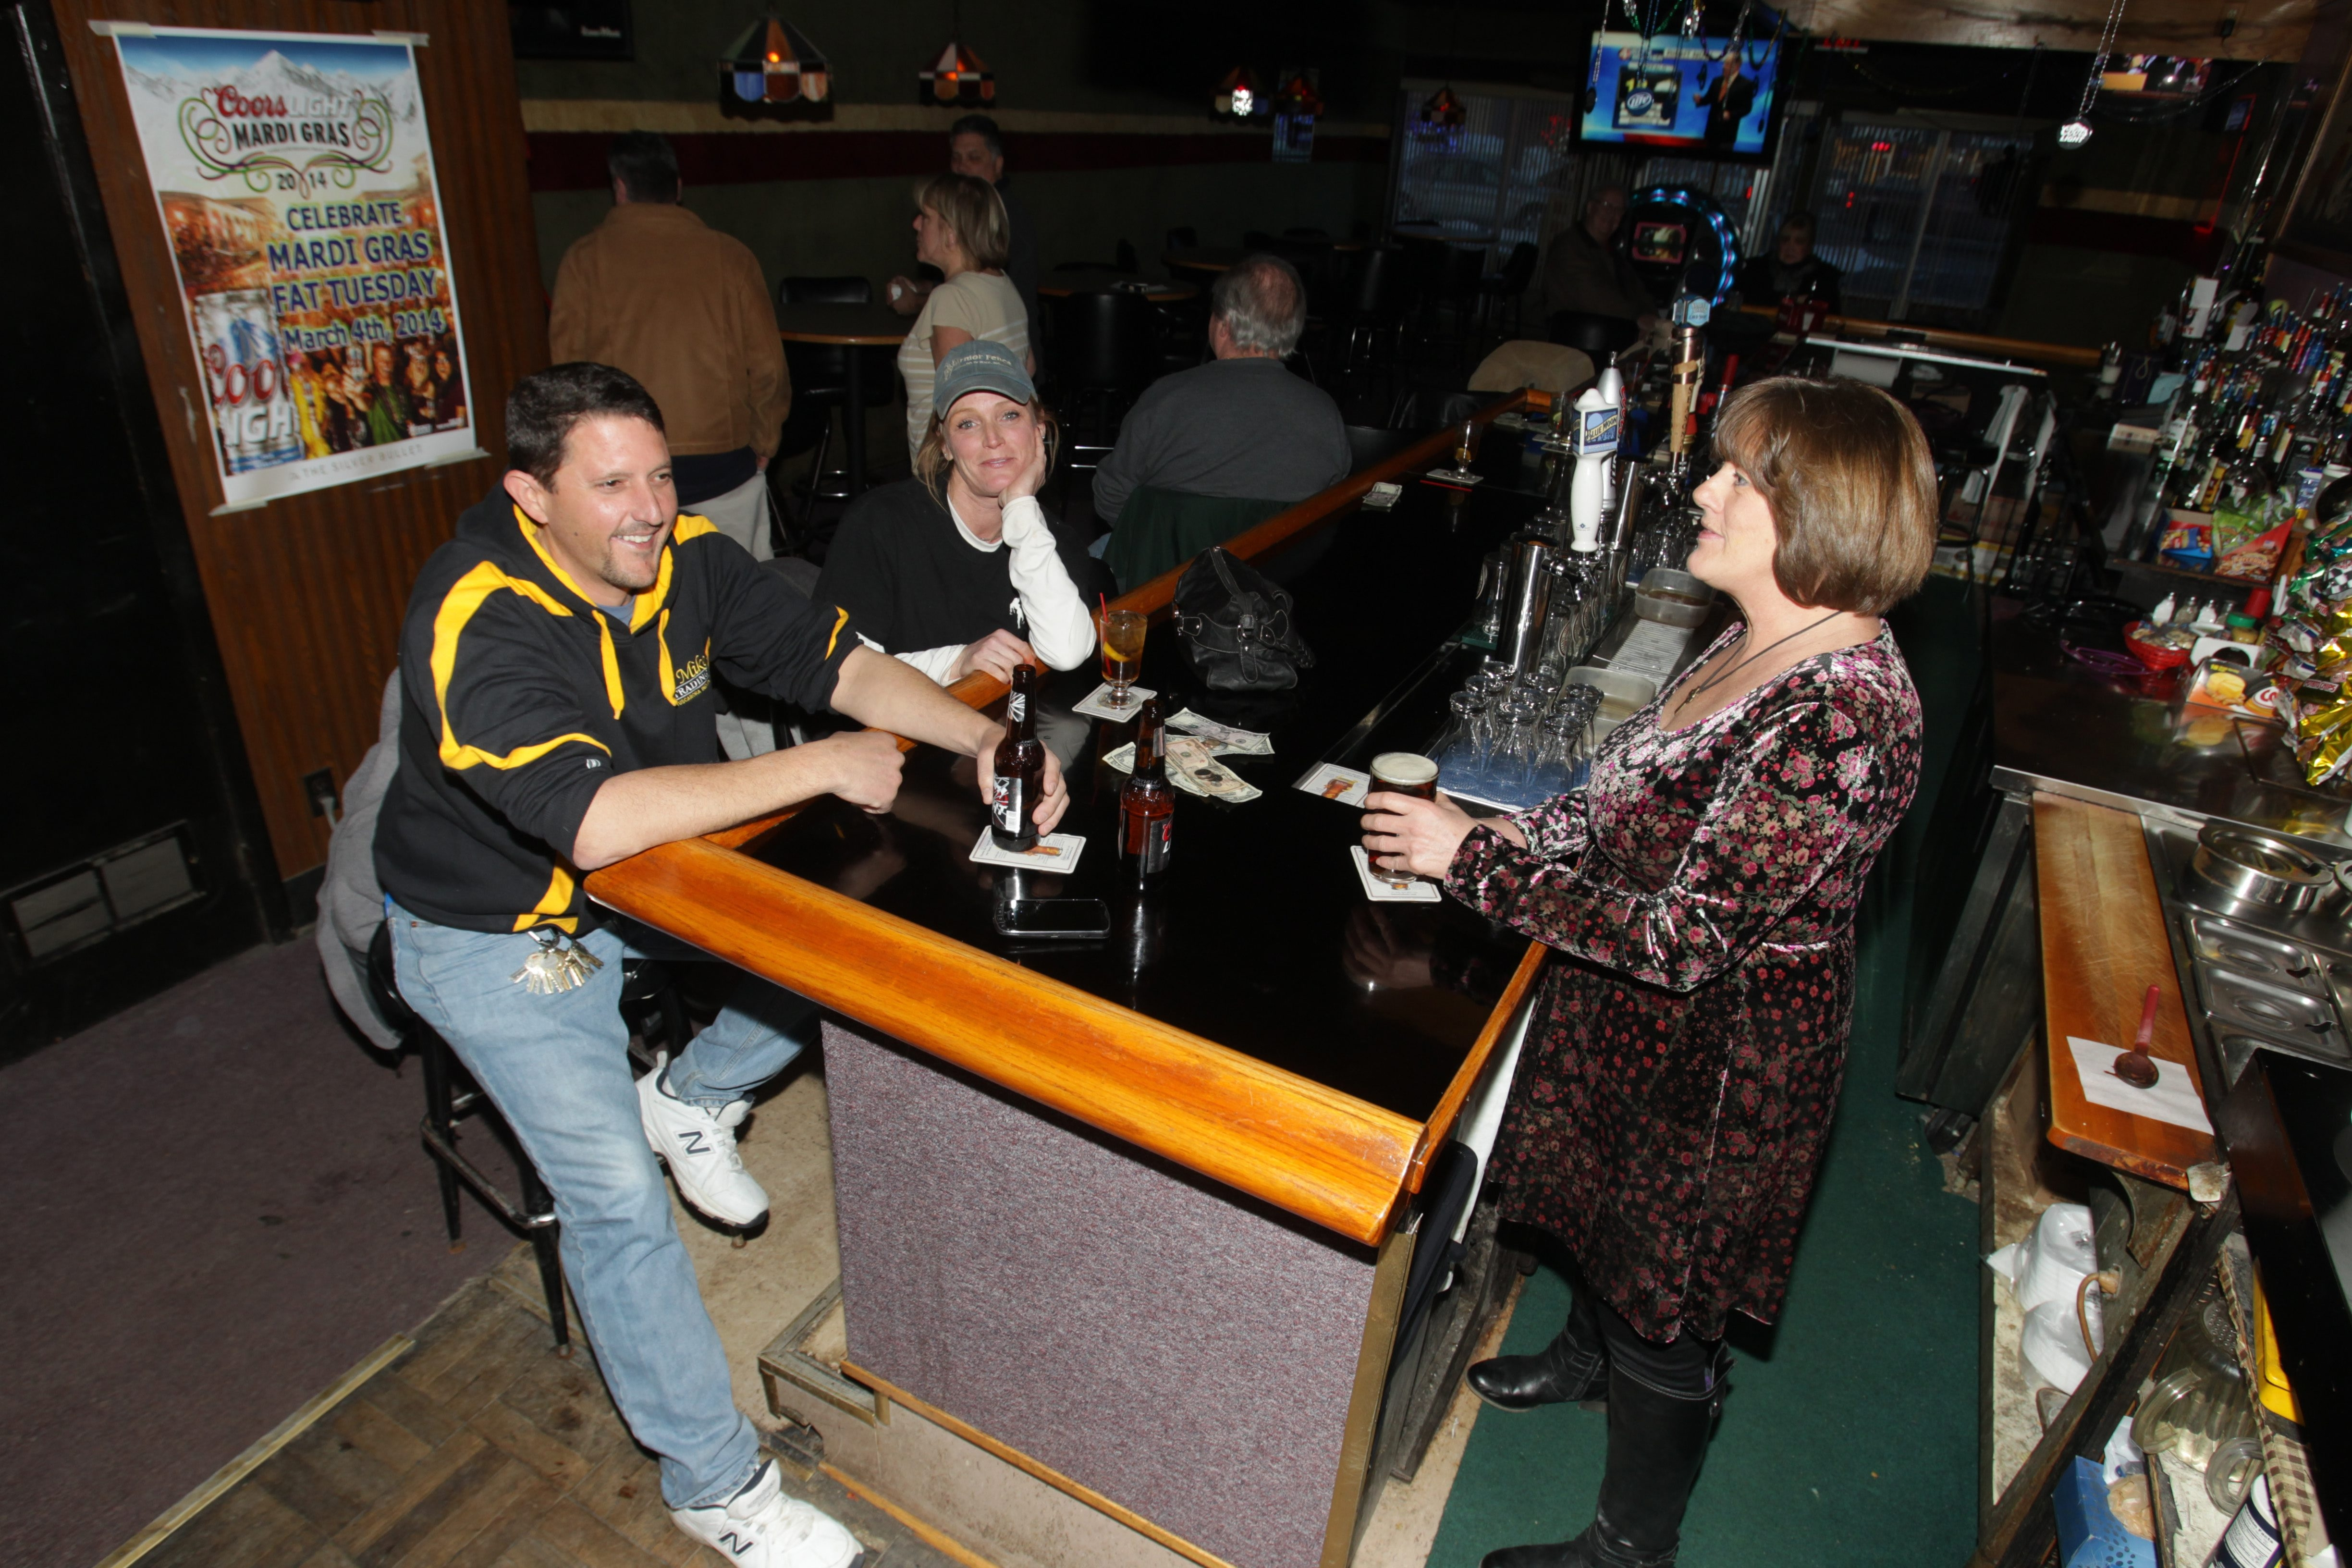 Mary McMahon tends bar at Gray's Place on Delaware Avenue. The Town of Tonawanda bar has been serving patrons for 35 years.